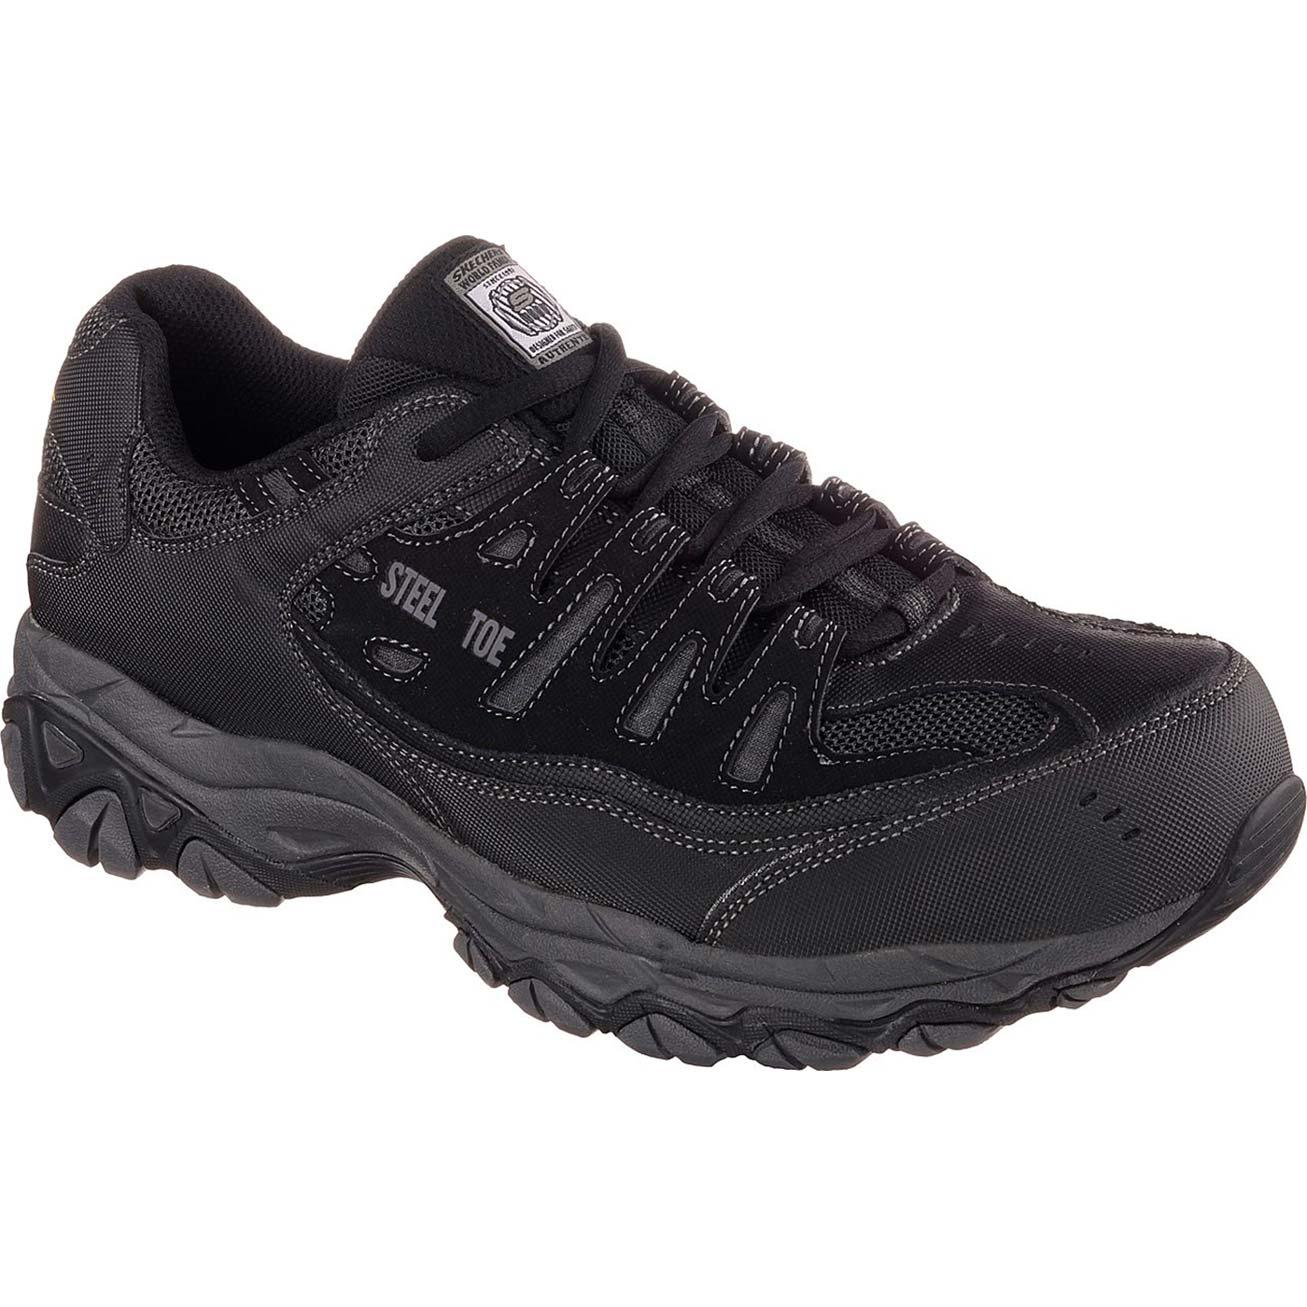 Skechers Work Relaxed Fit Cankton Steel Toe Work Athletic